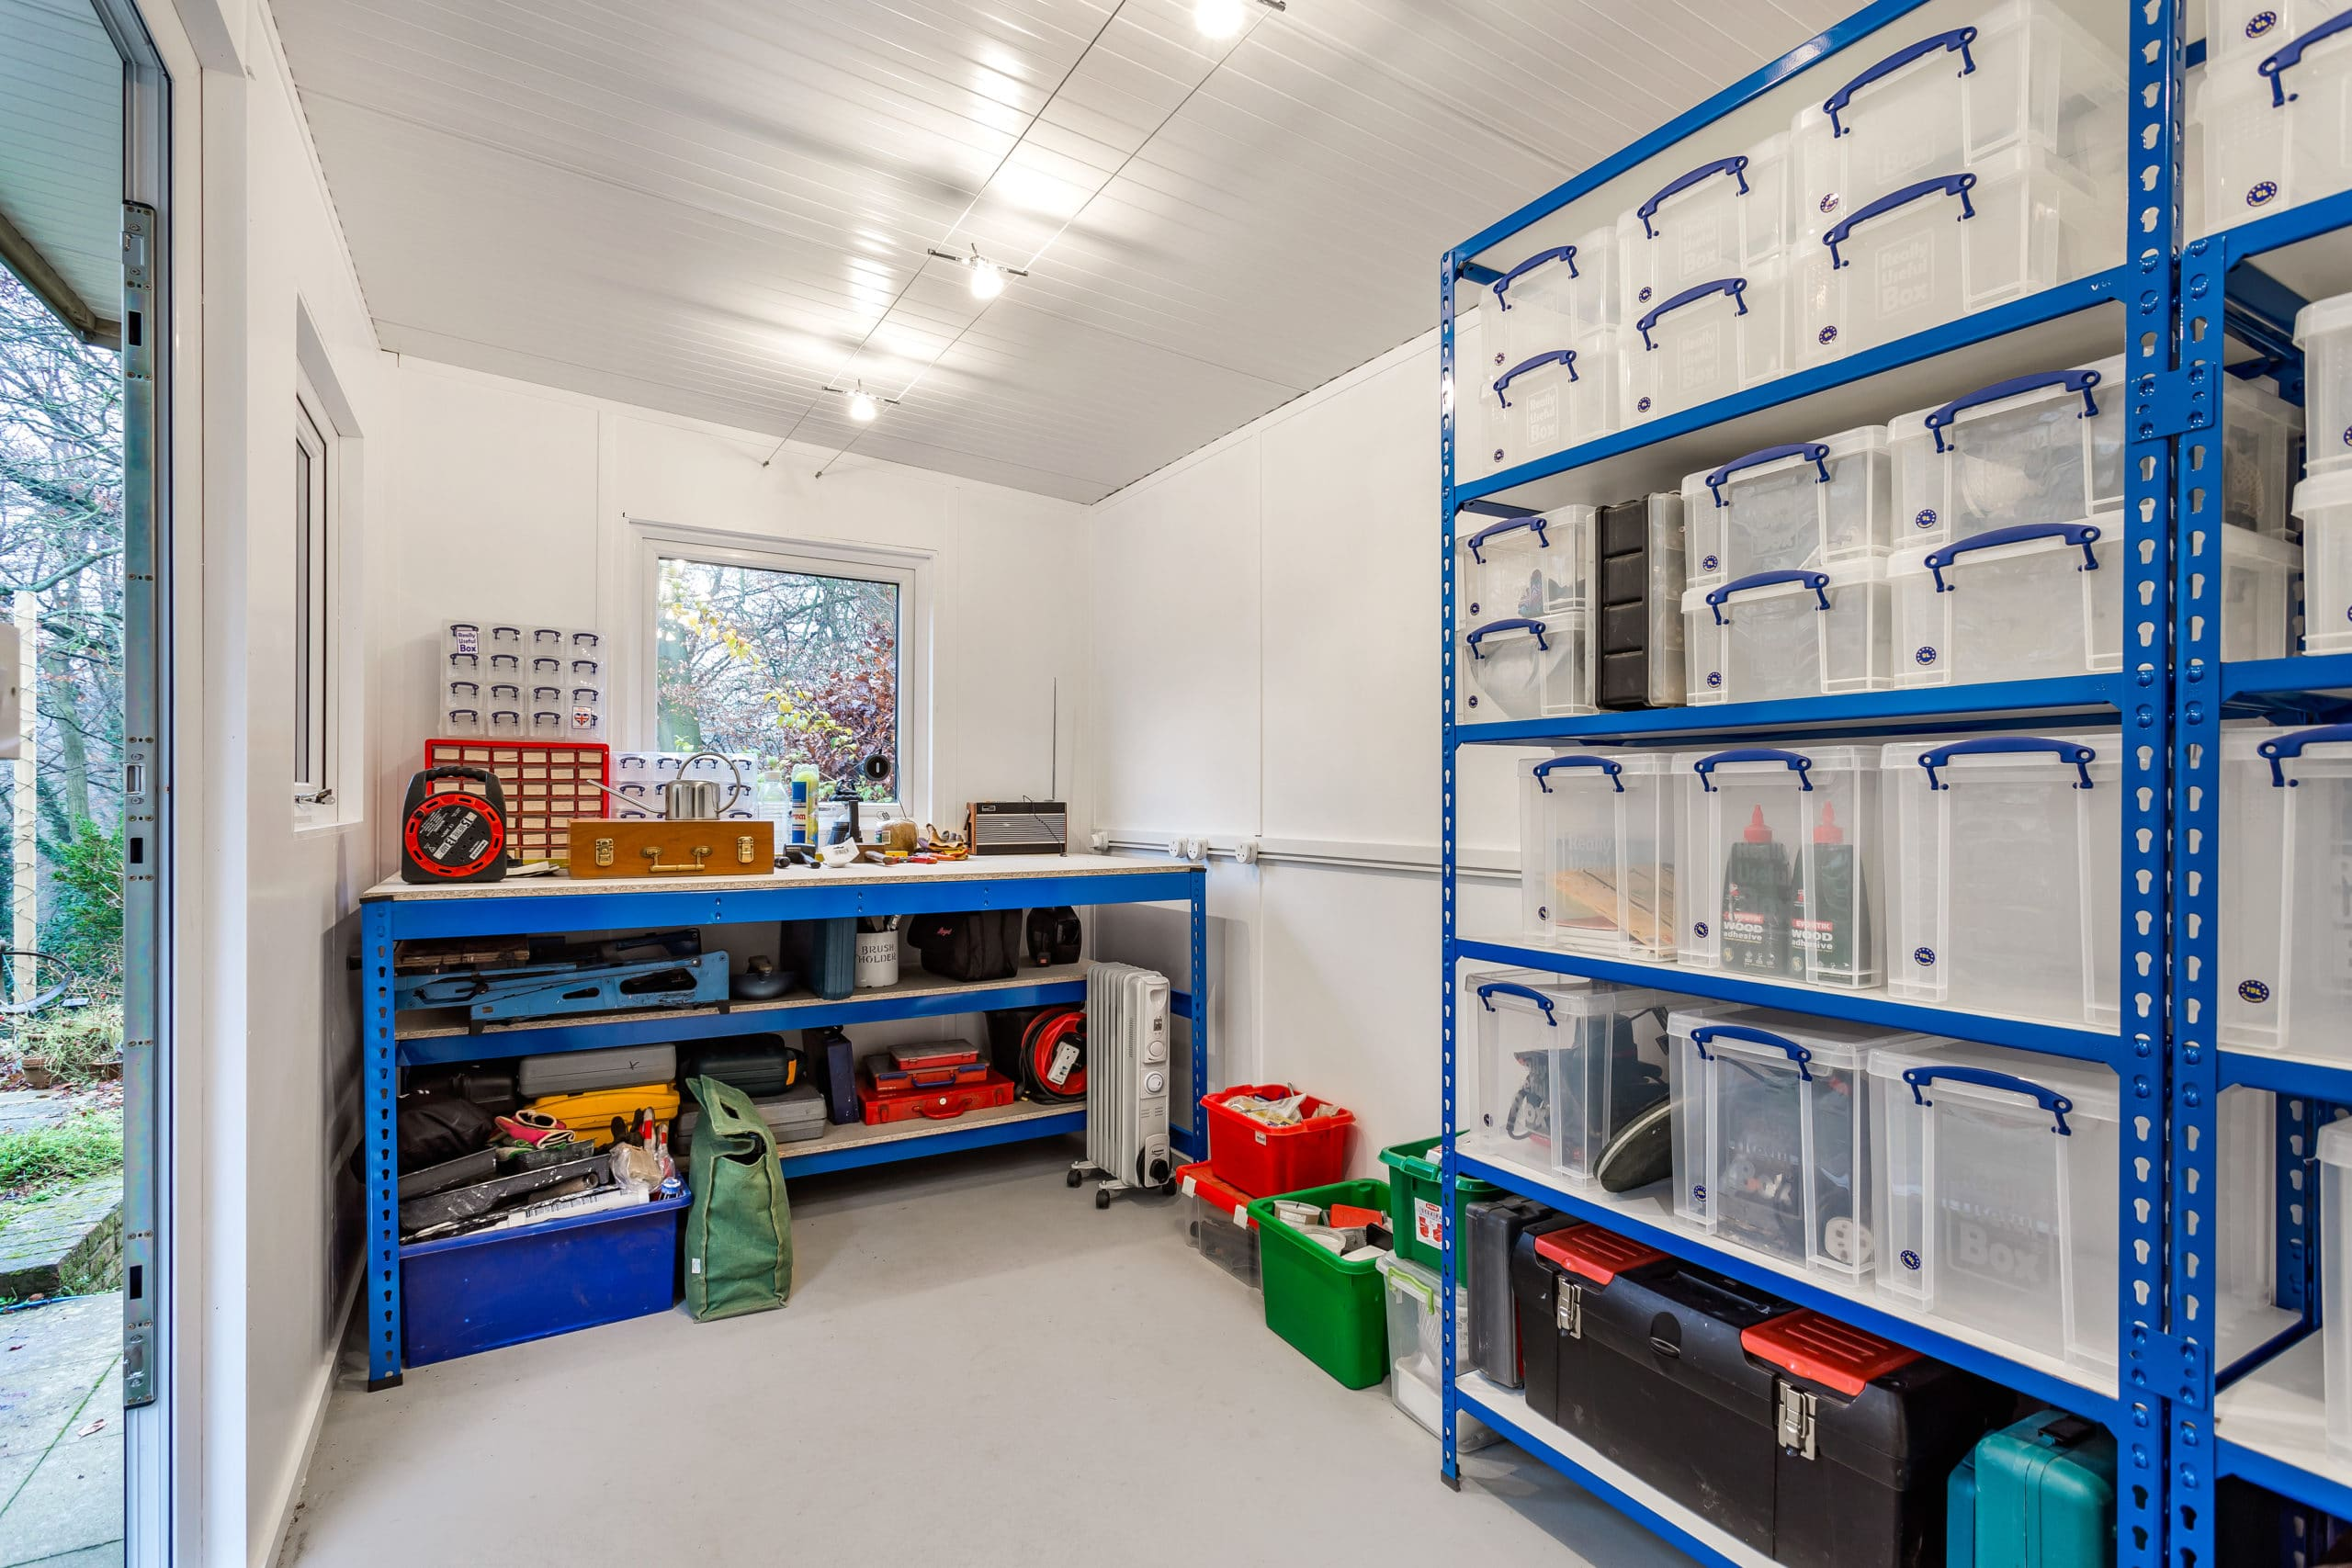 Interior of garden storage workshop with blue metal workbench and clear boxes stacked on shelving